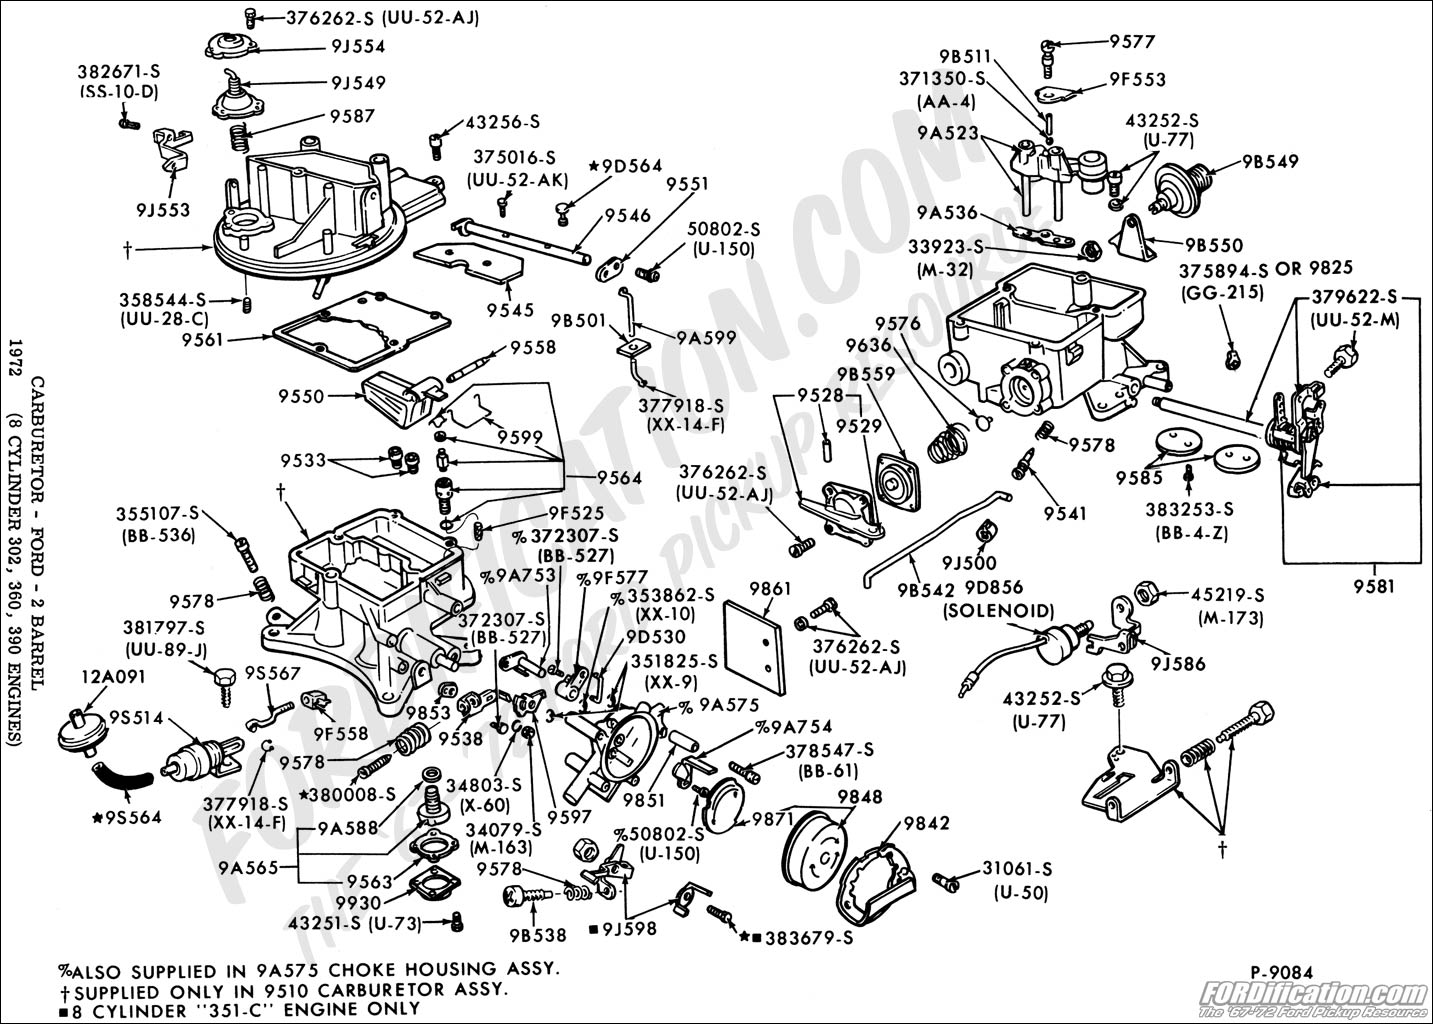 wiring diagram 1991 s10 2 5 wiring discover your wiring diagram ford f100 wiring diagrams